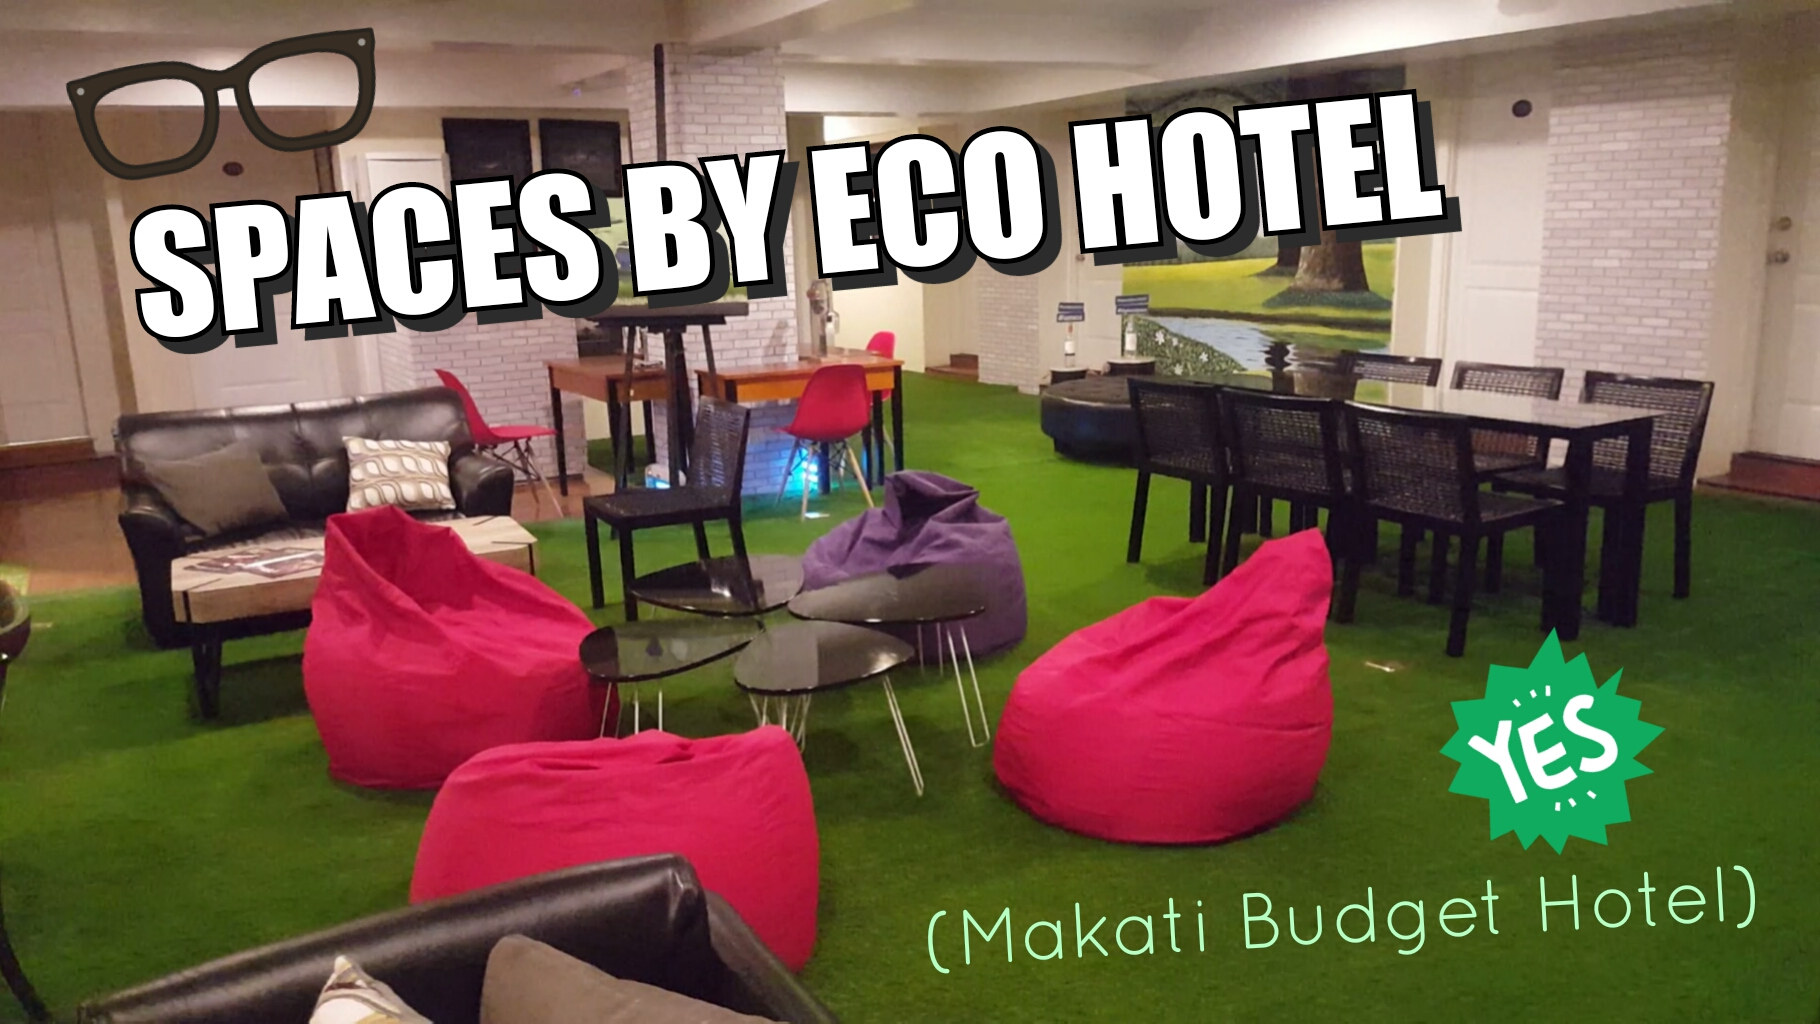 Review of Spaces by Eco Hotel - Amorsolo Street - Legaspi Village Makati